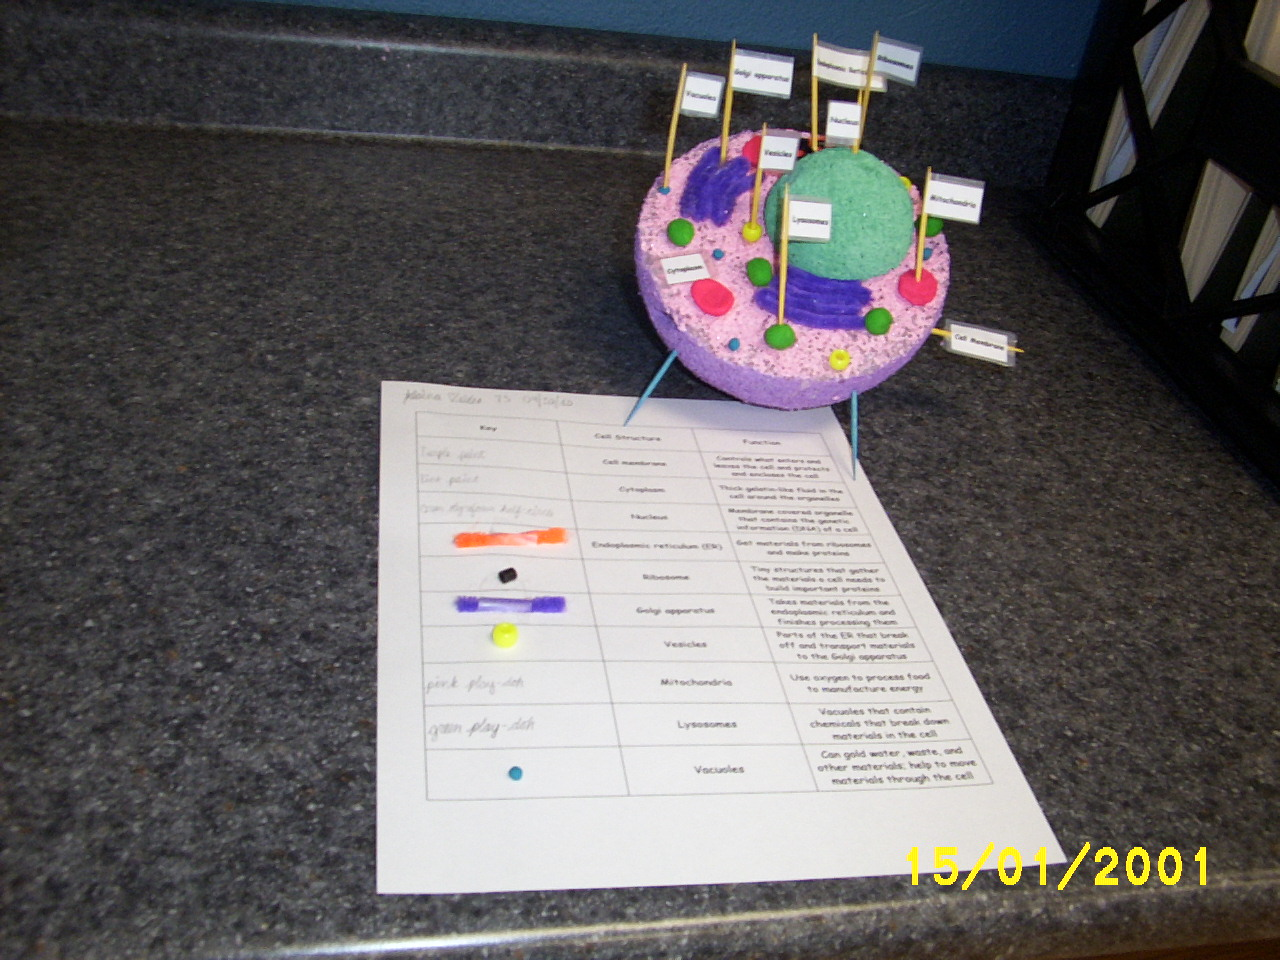 Animal Cell 3D Science Project http://stpvogelweid.edublogs.org/2010/11/04/the-7th-grade-science-project-on-plant-and-animal-cells/